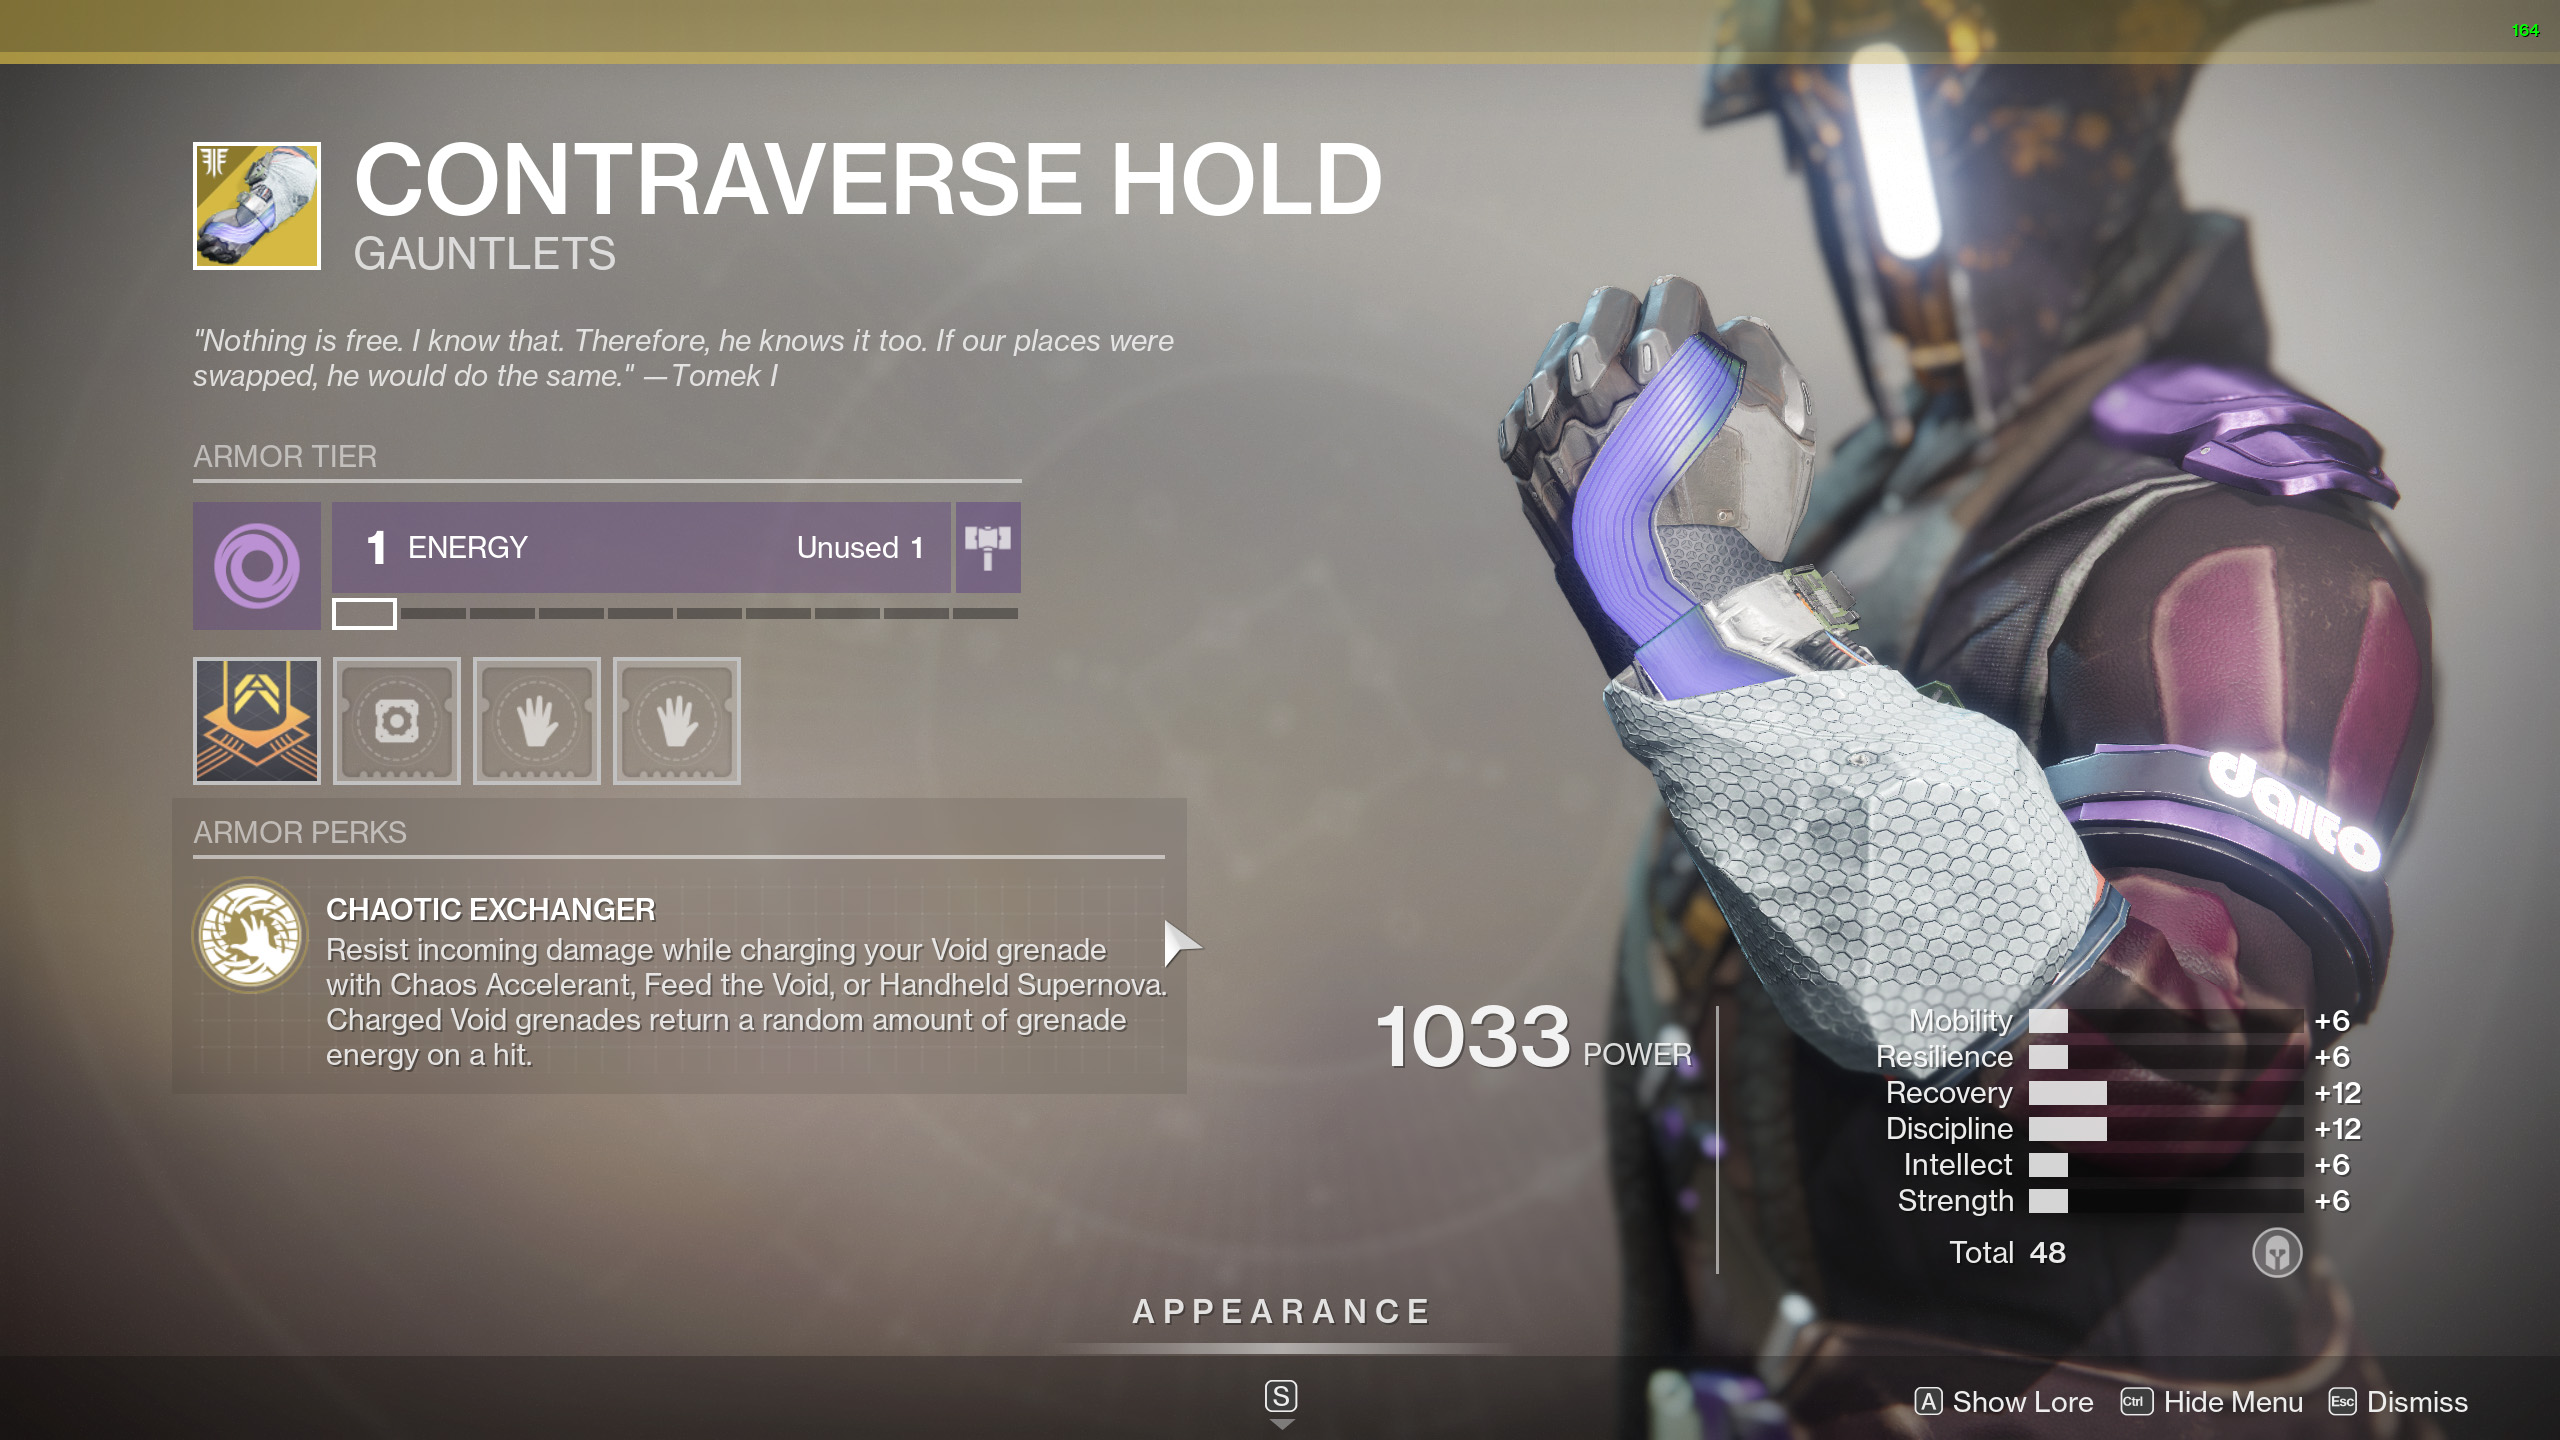 contraverse hold perk chaotic exchanger destiny 2